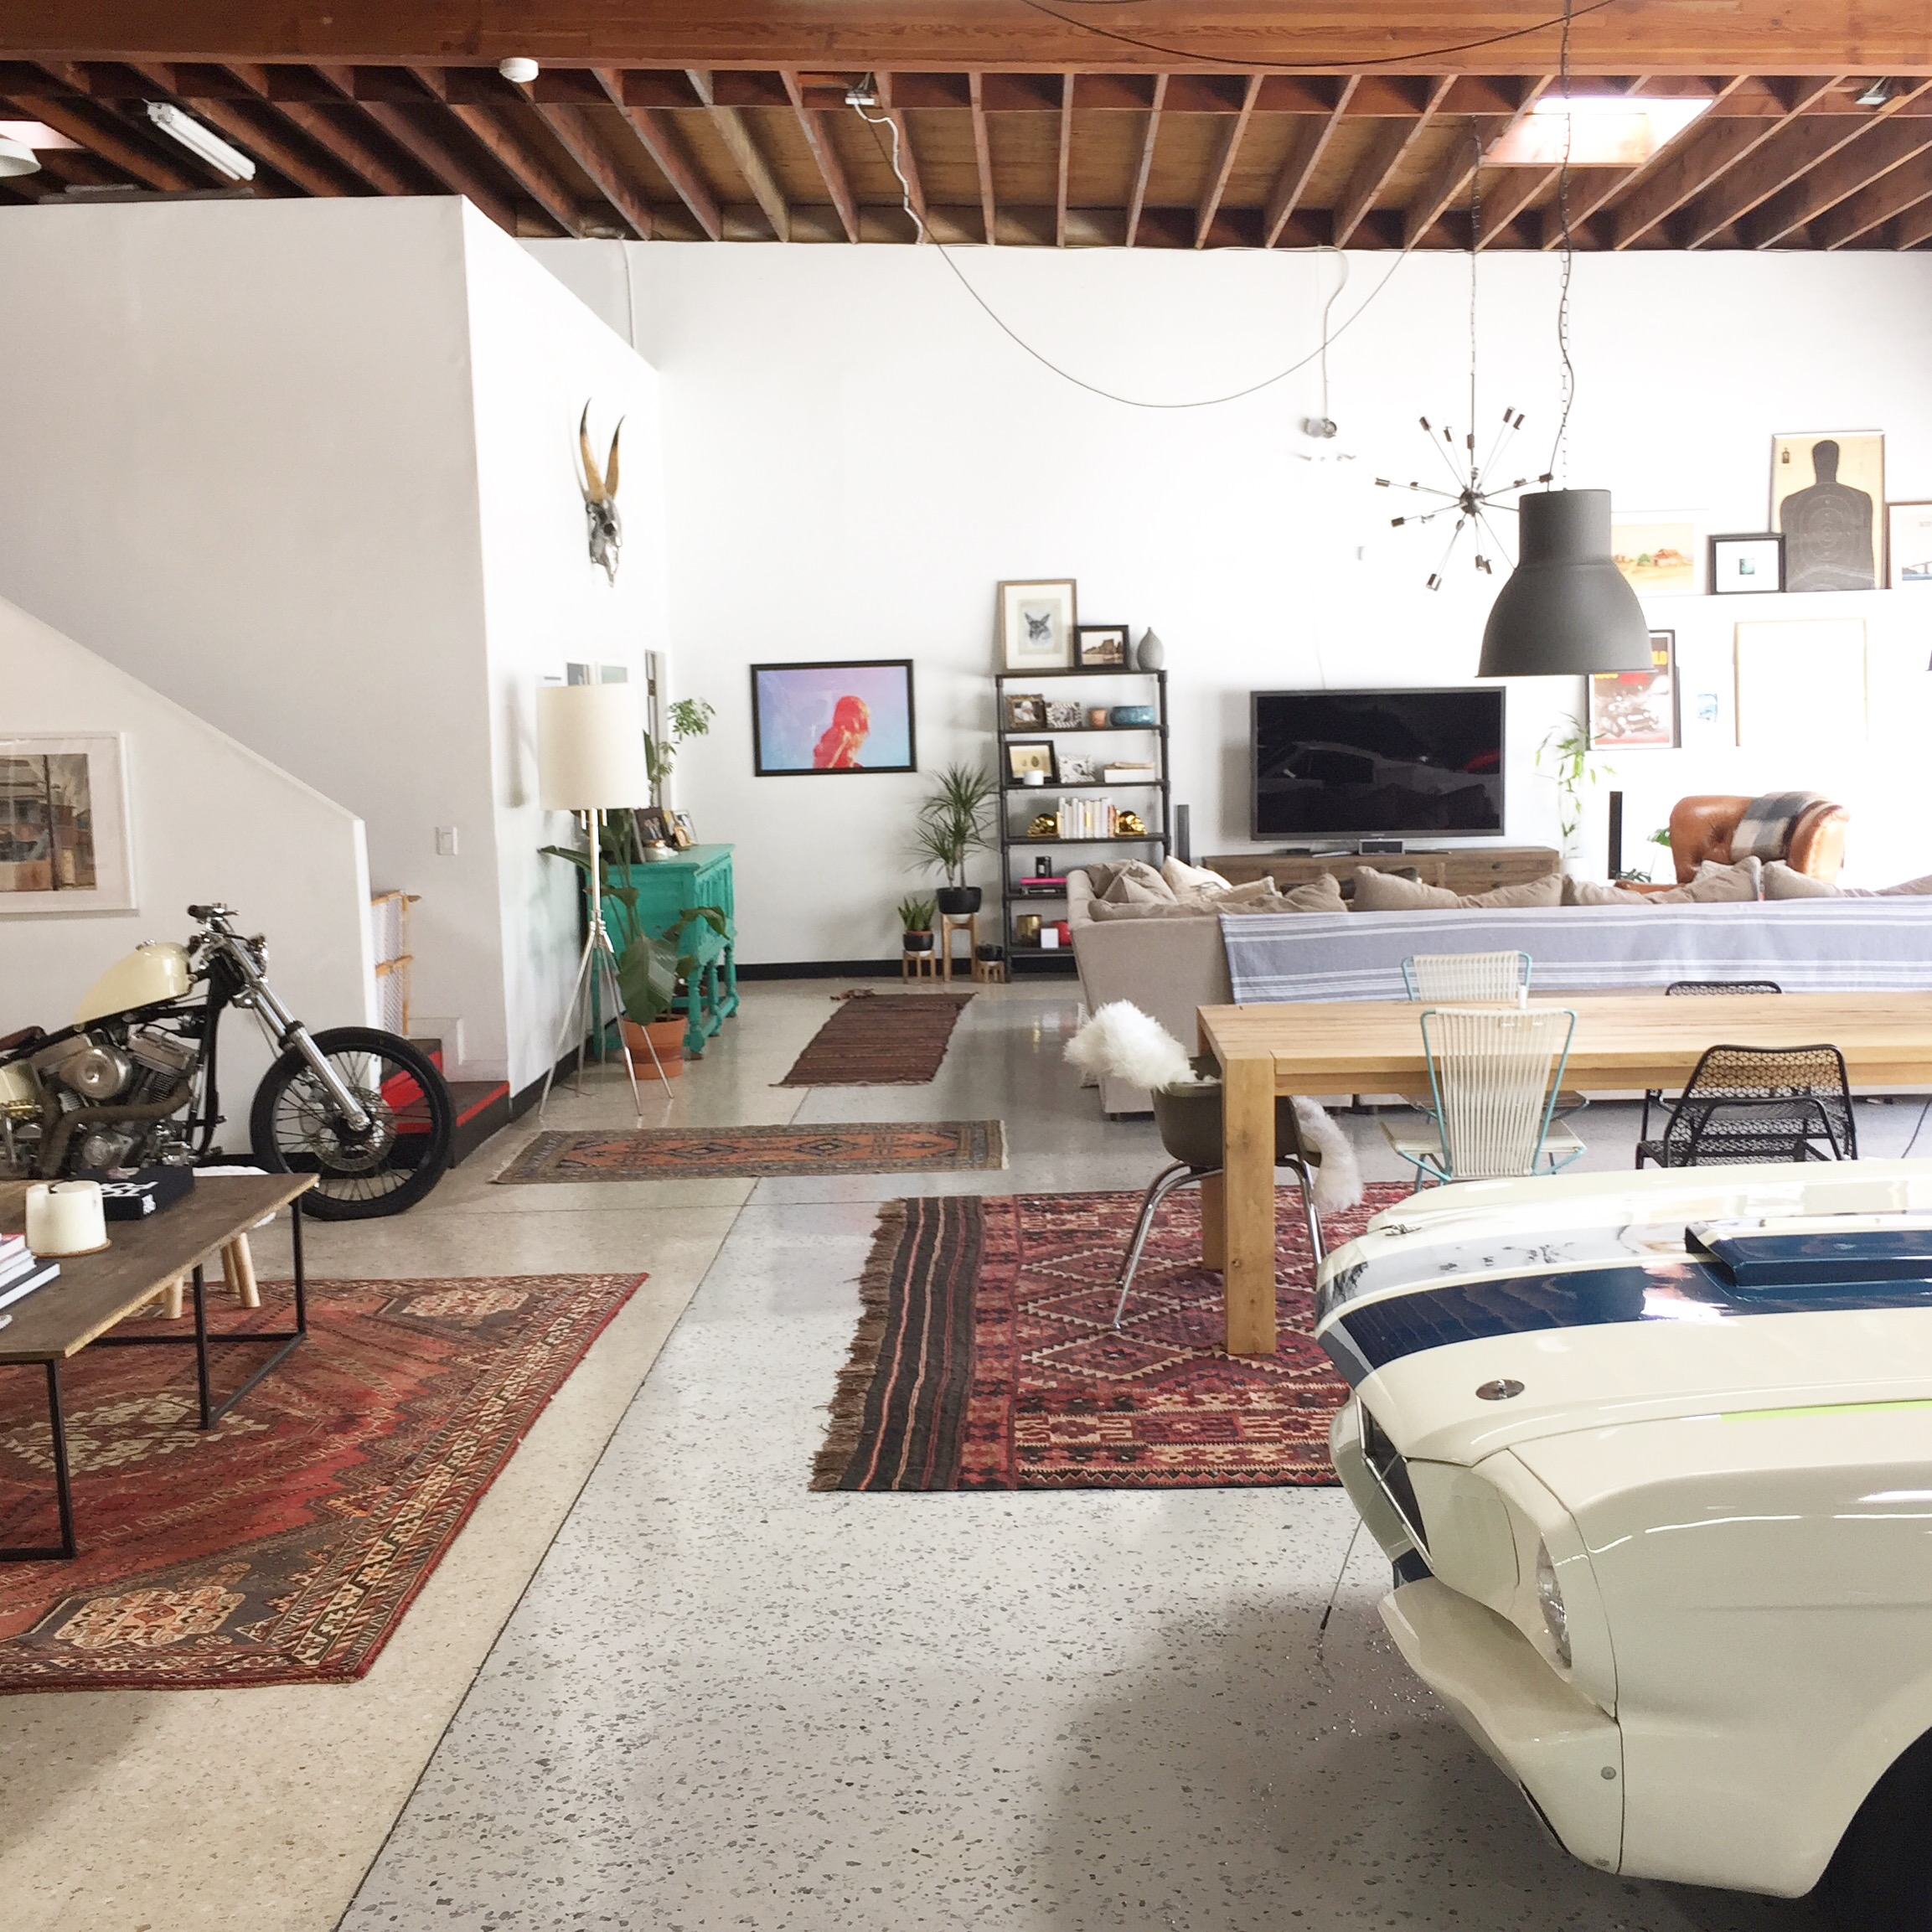 Garage Apartment Los Angeles Cohabitating With Cars An Awesome La Garage And Living Space